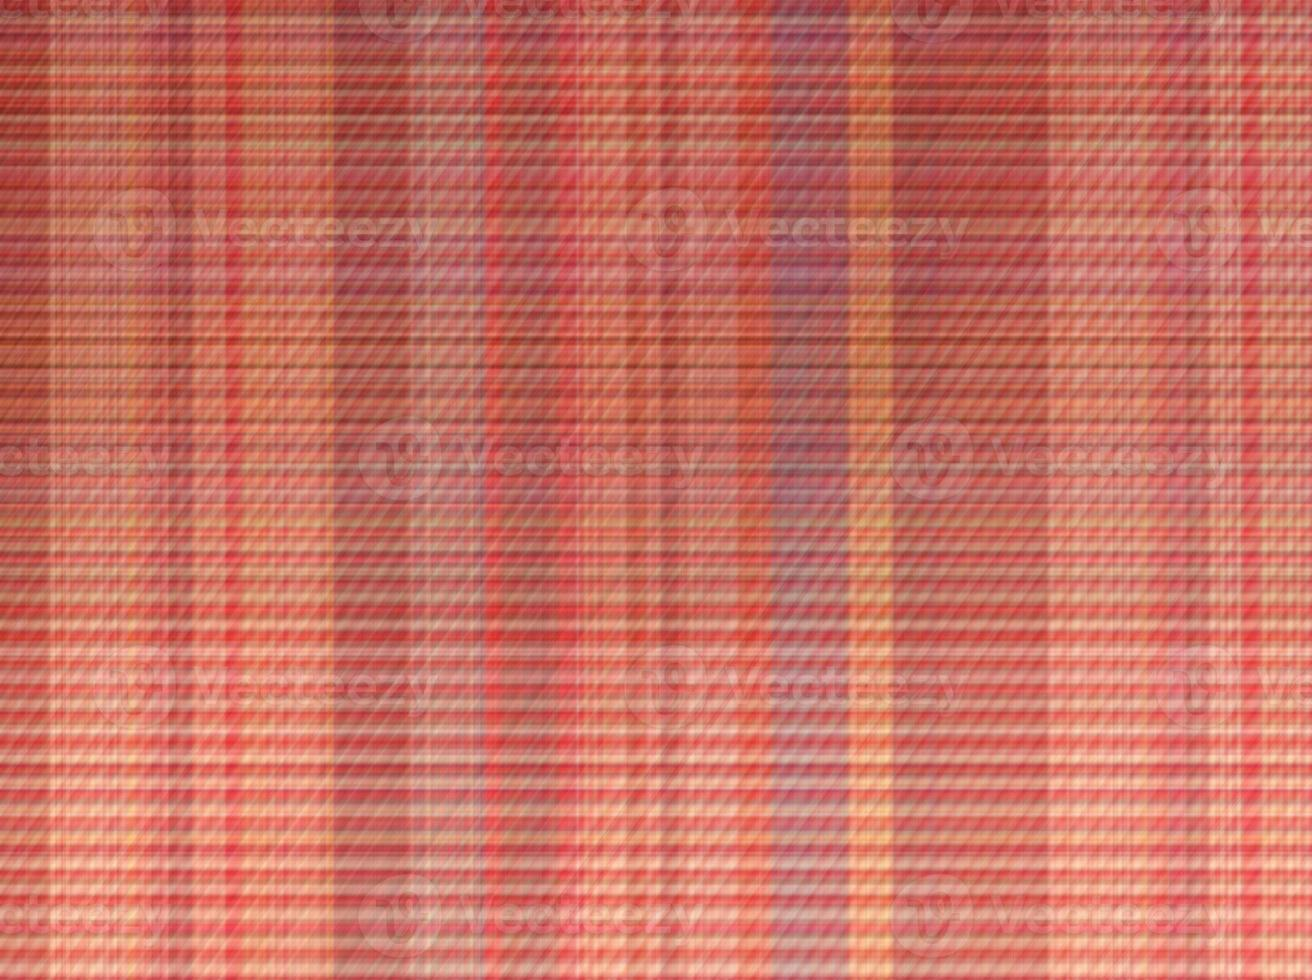 fabric plaid of colorful background and abstract texture photo